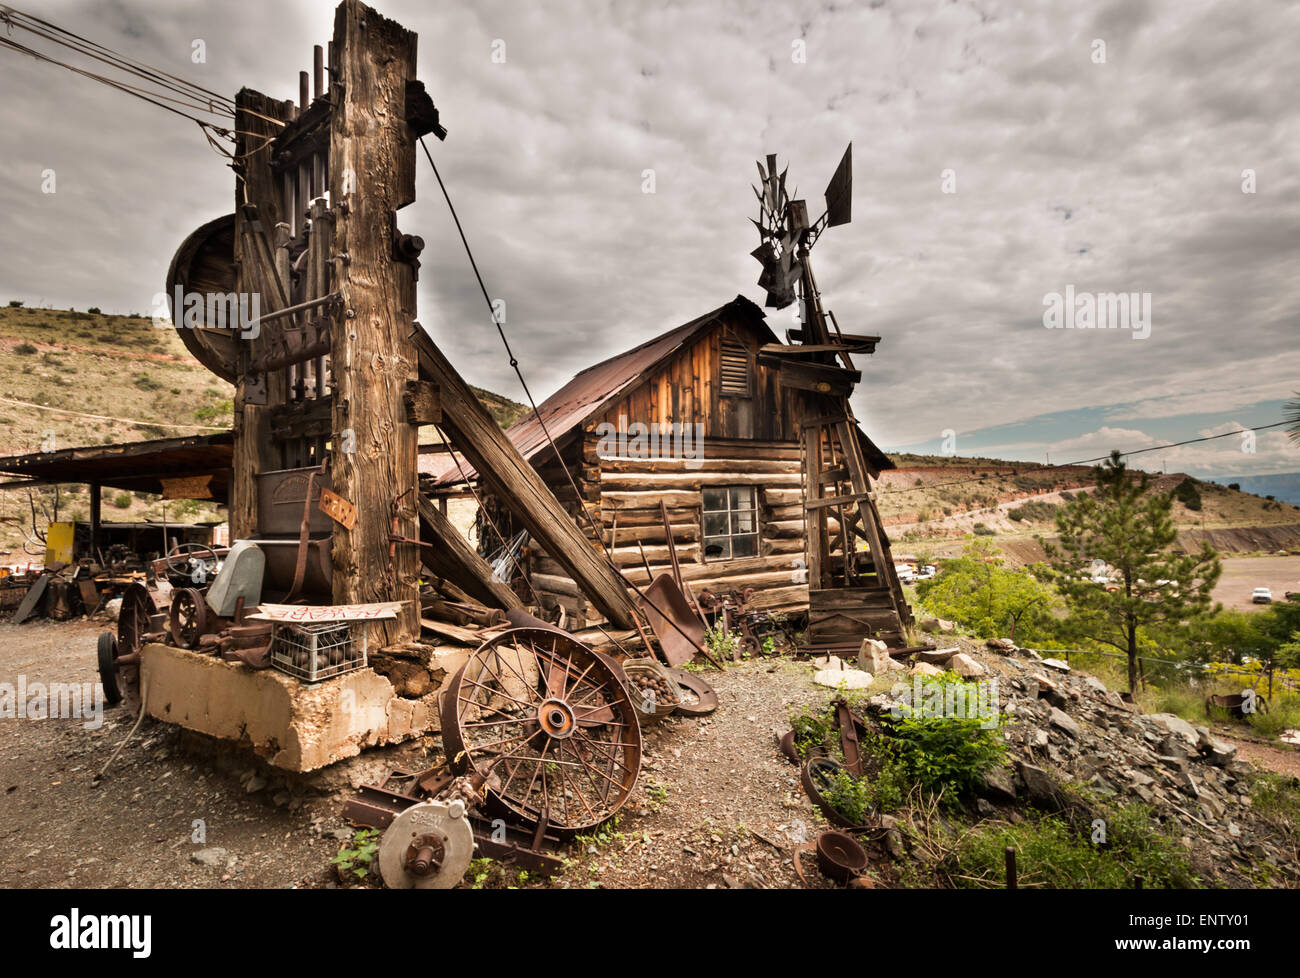 Wheel Wells Stock Photos Amp Wheel Wells Stock Images Alamy